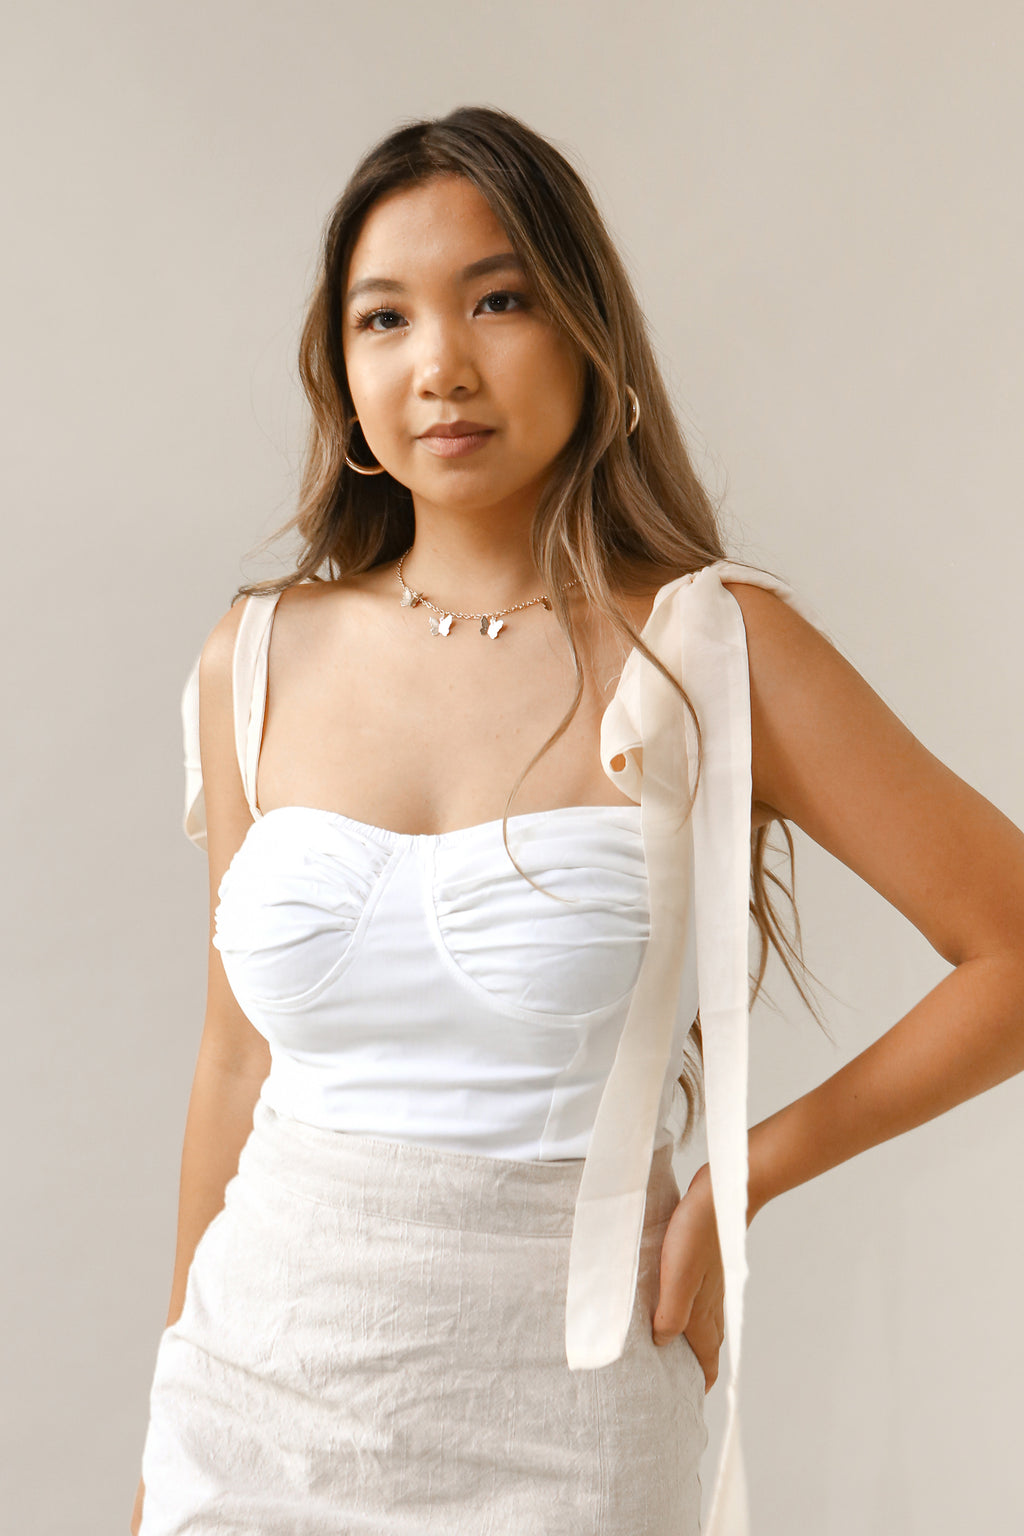 wild rina womens boutique trendy boho cute bow tie ribbon sleeve top tank top white off white cream chiffon ties